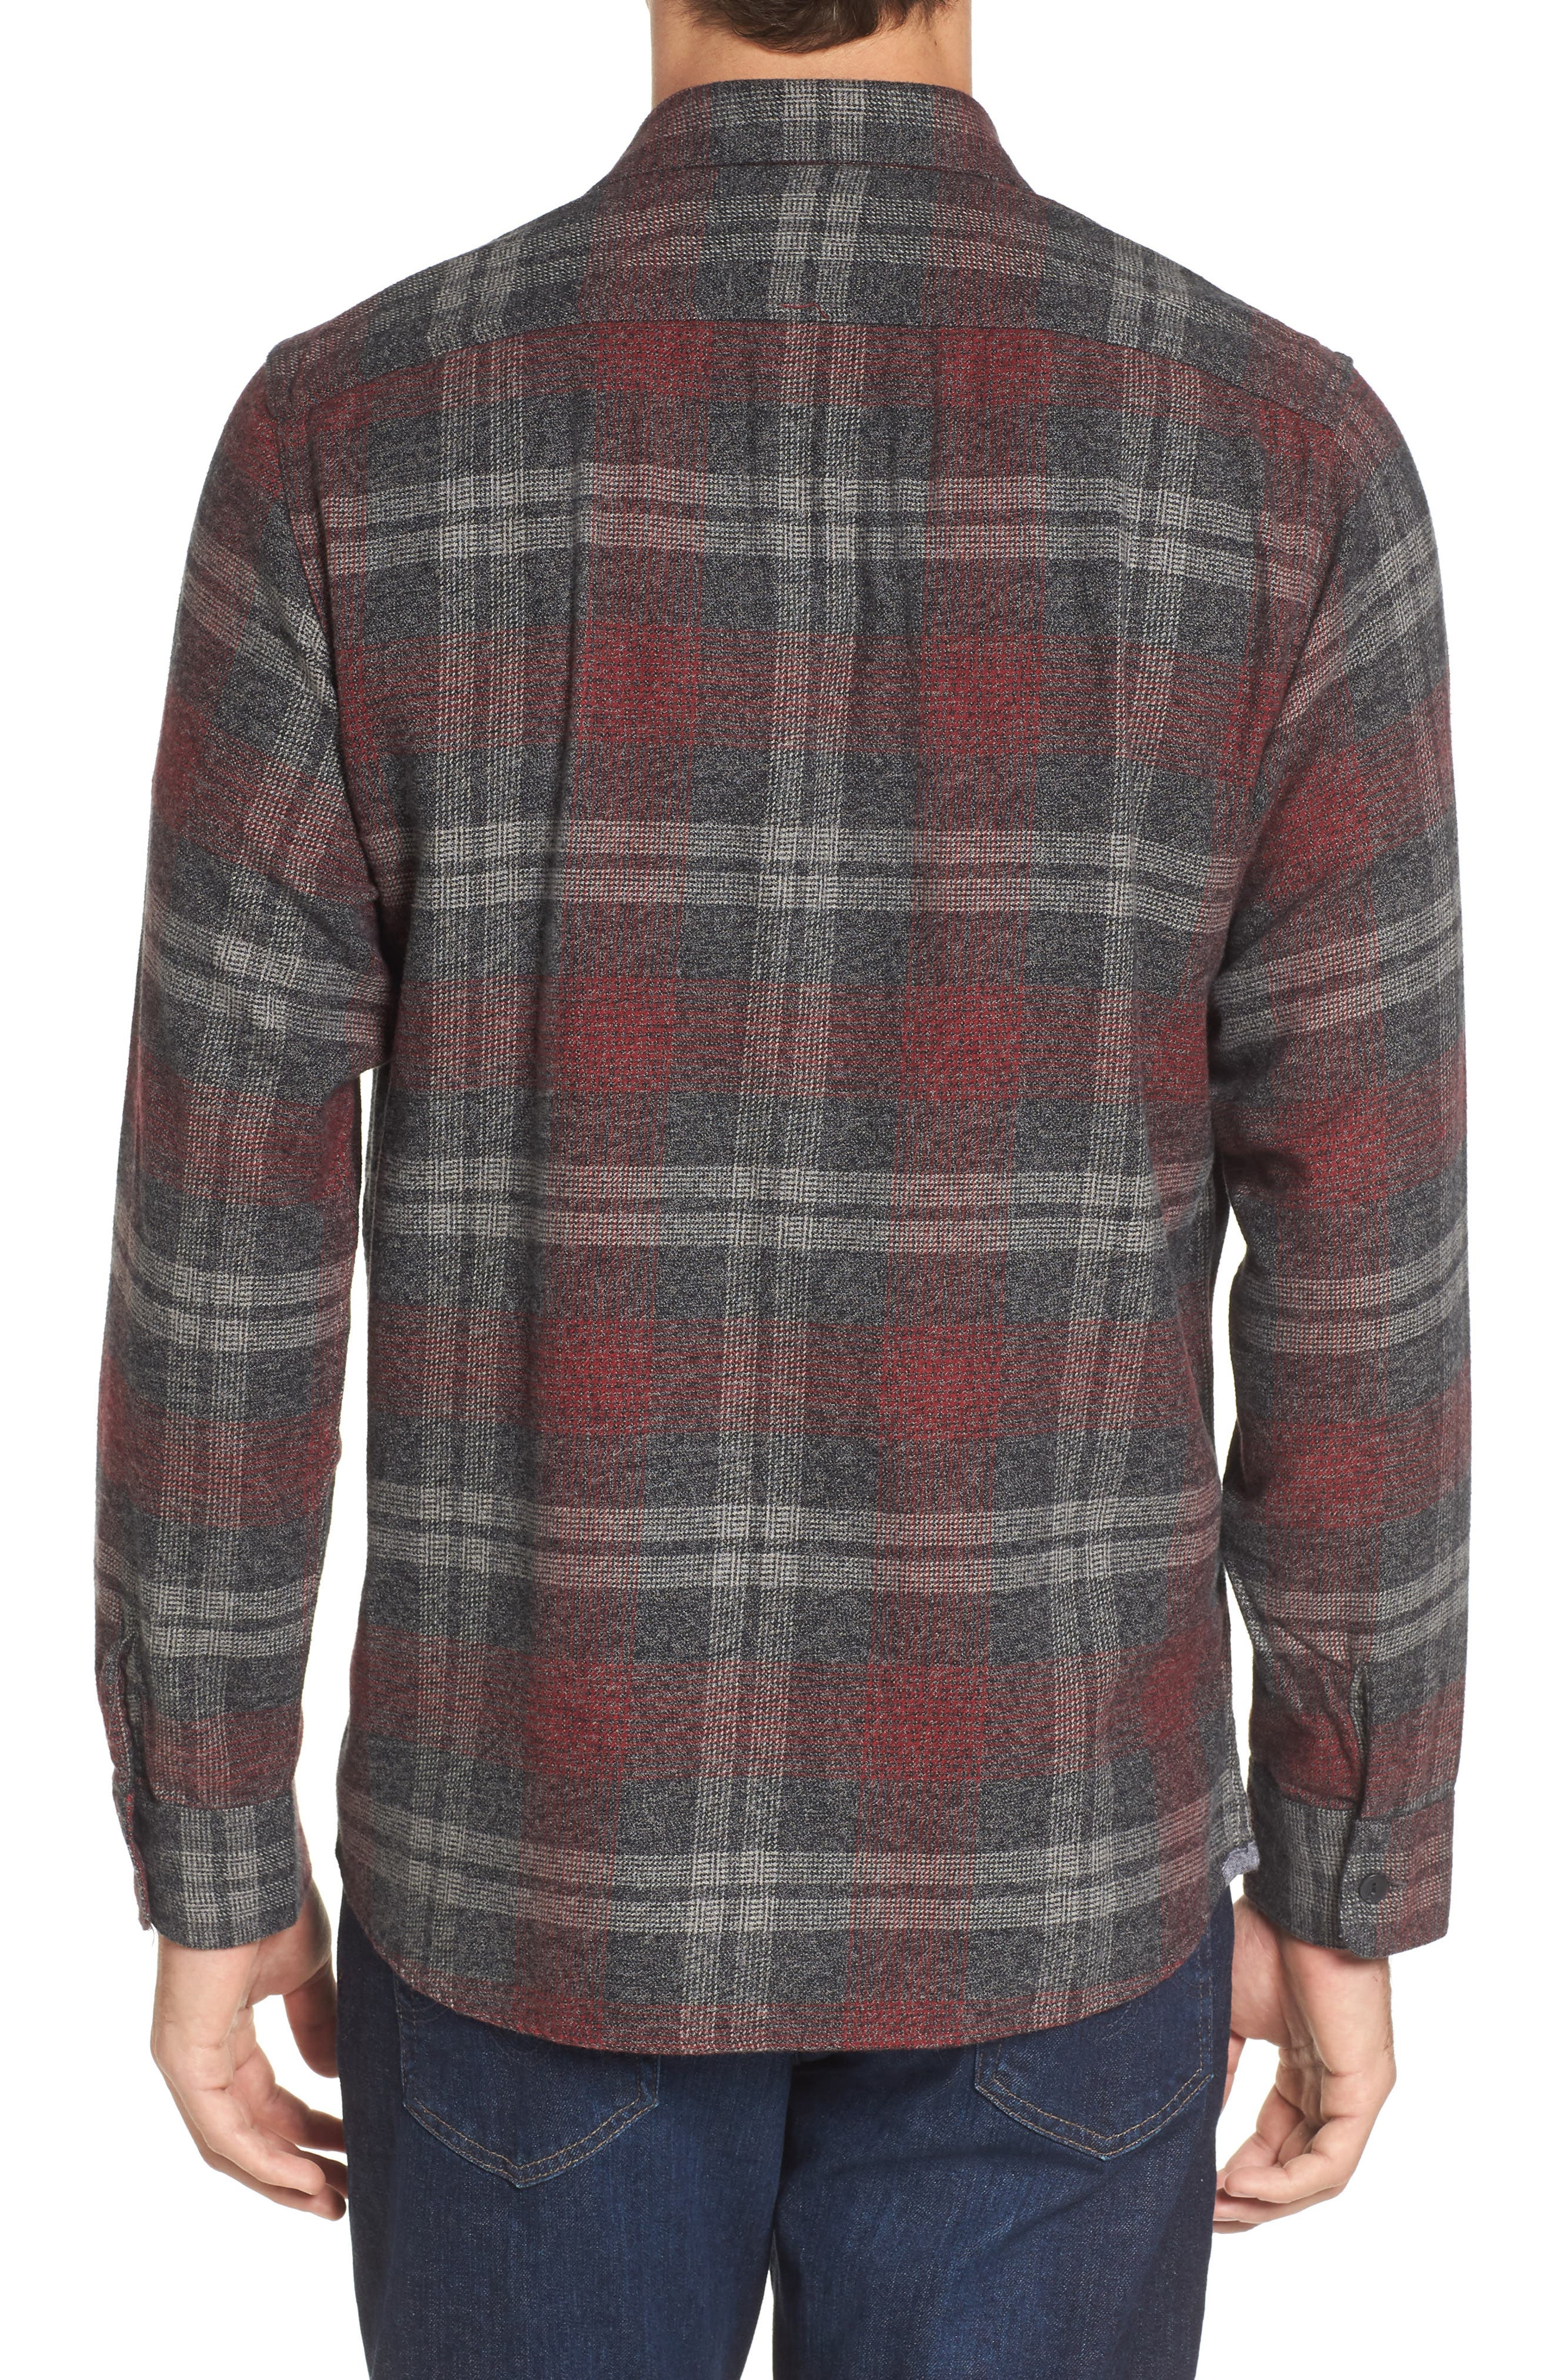 Marston Lux Plaid Flannel Shirt,                             Alternate thumbnail 2, color,                             Charcoal Burgundy